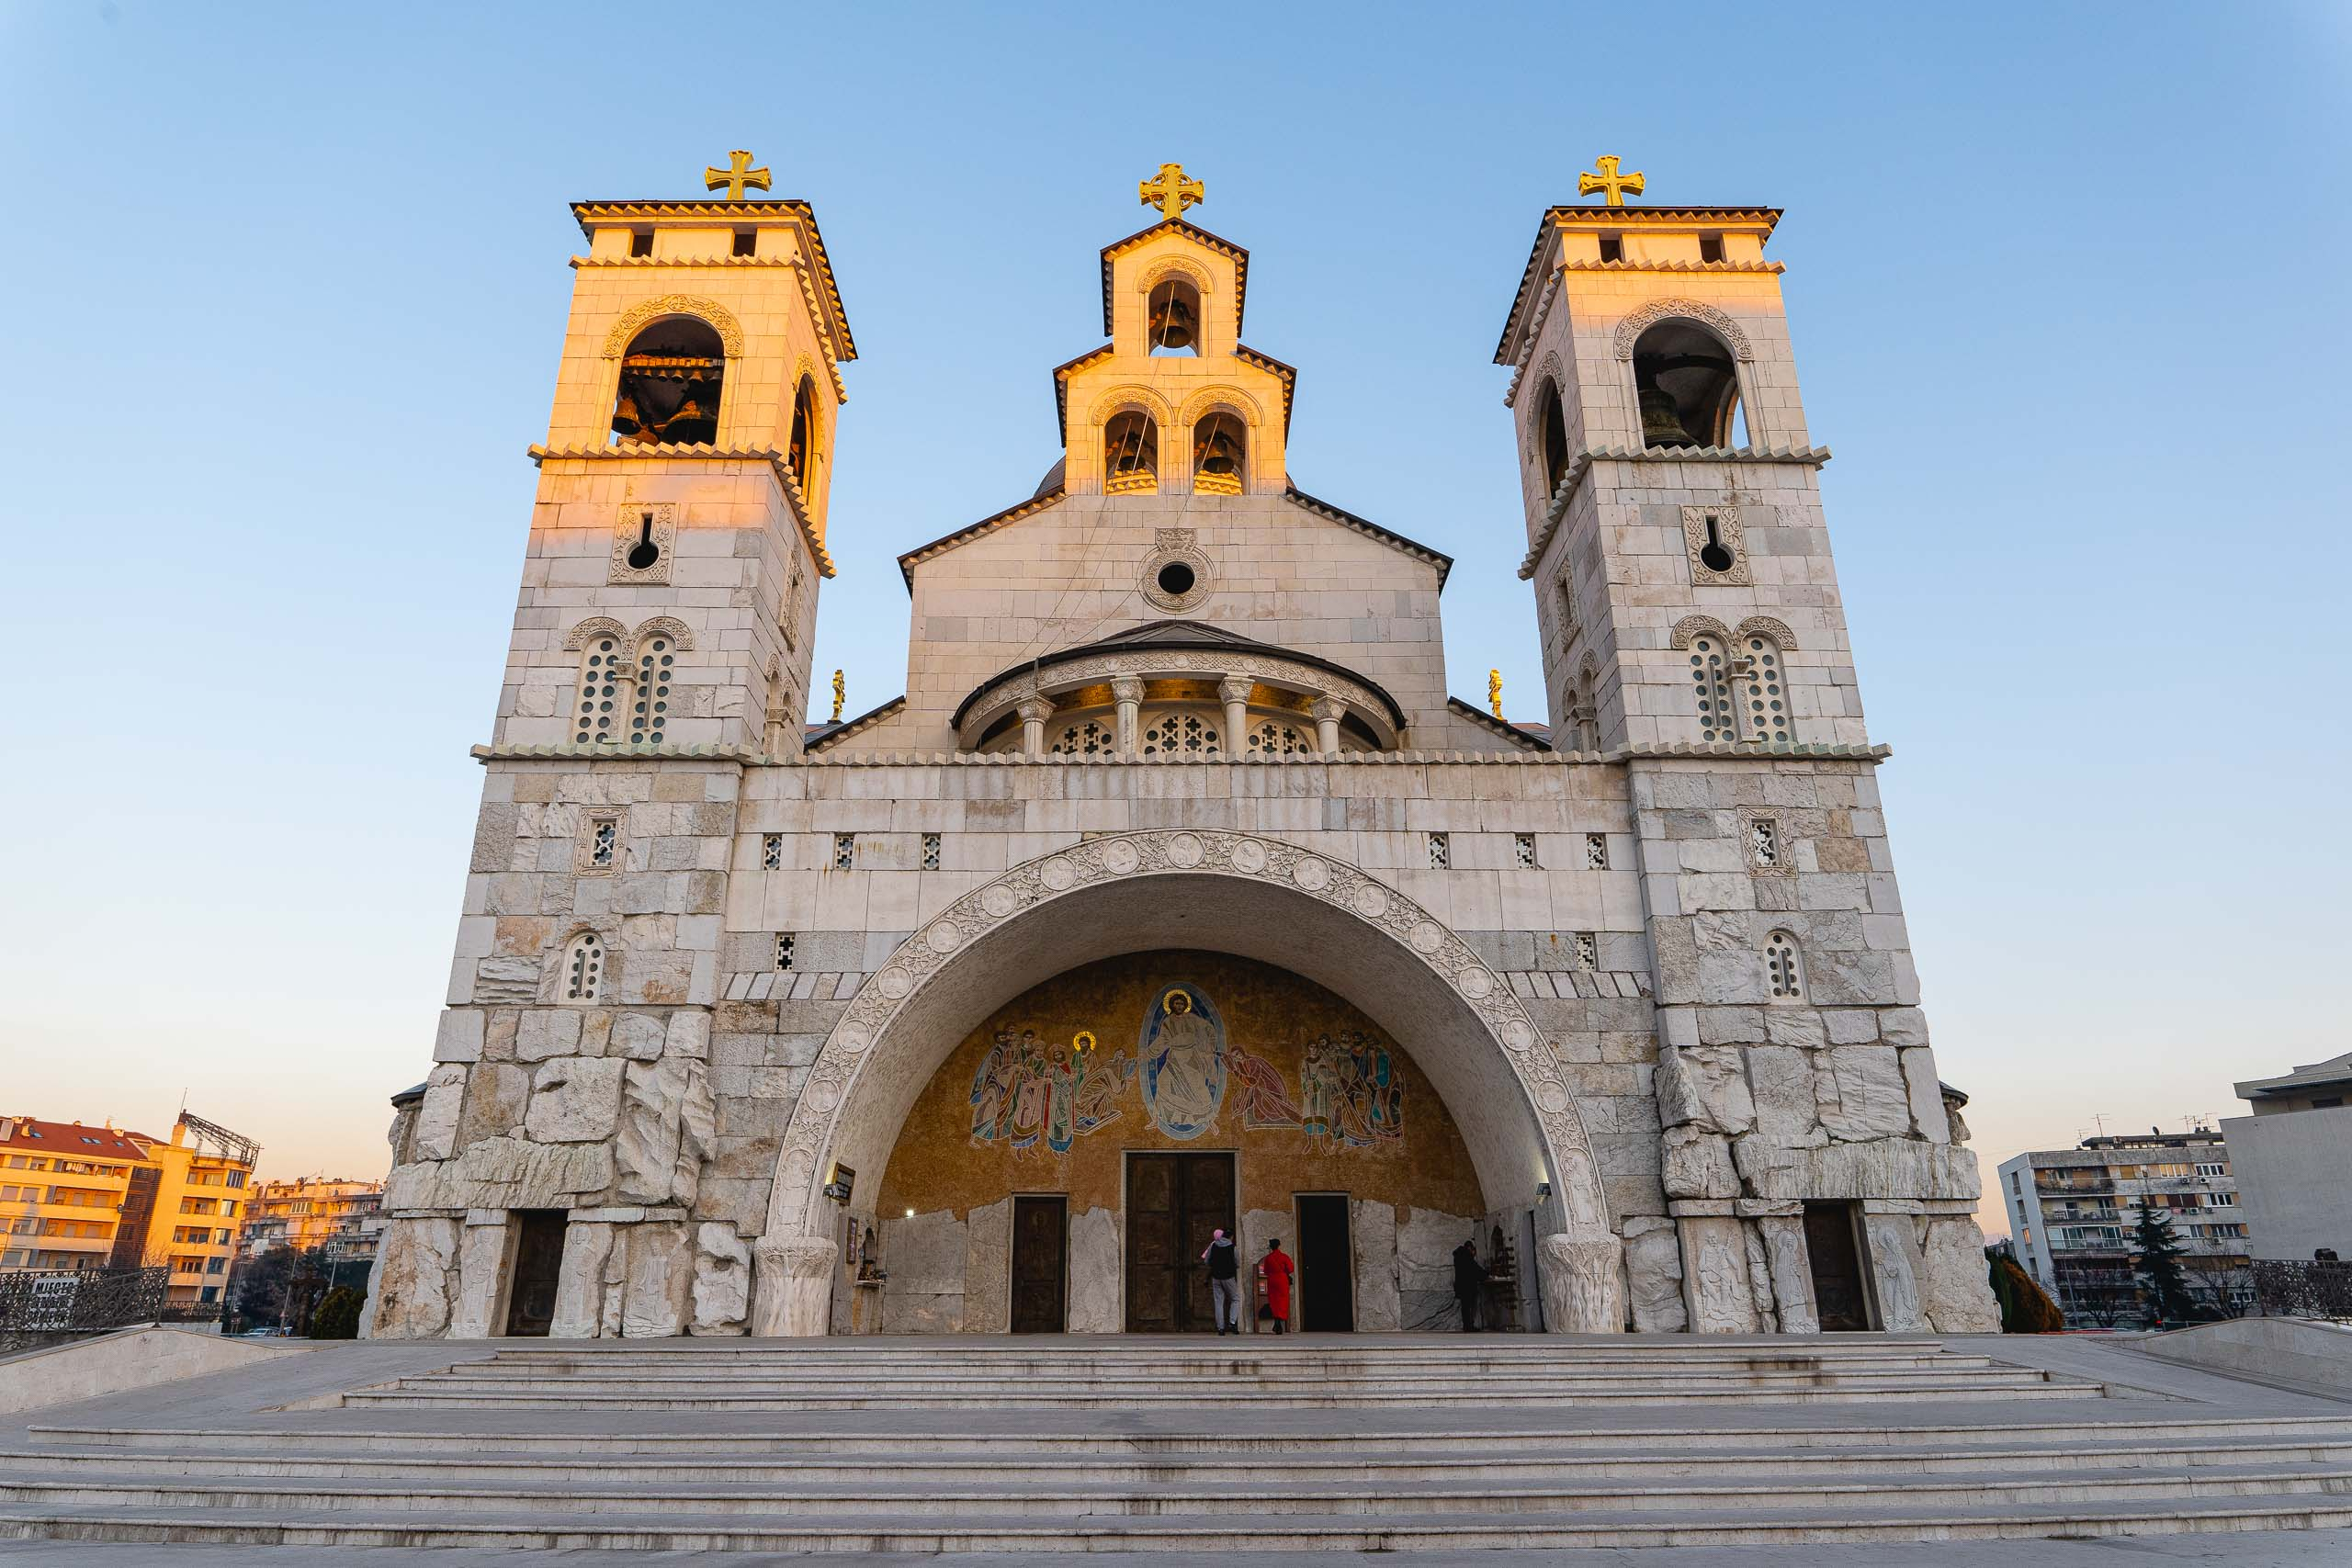 Podgorica: Cathedral of the Resurrection of Christ